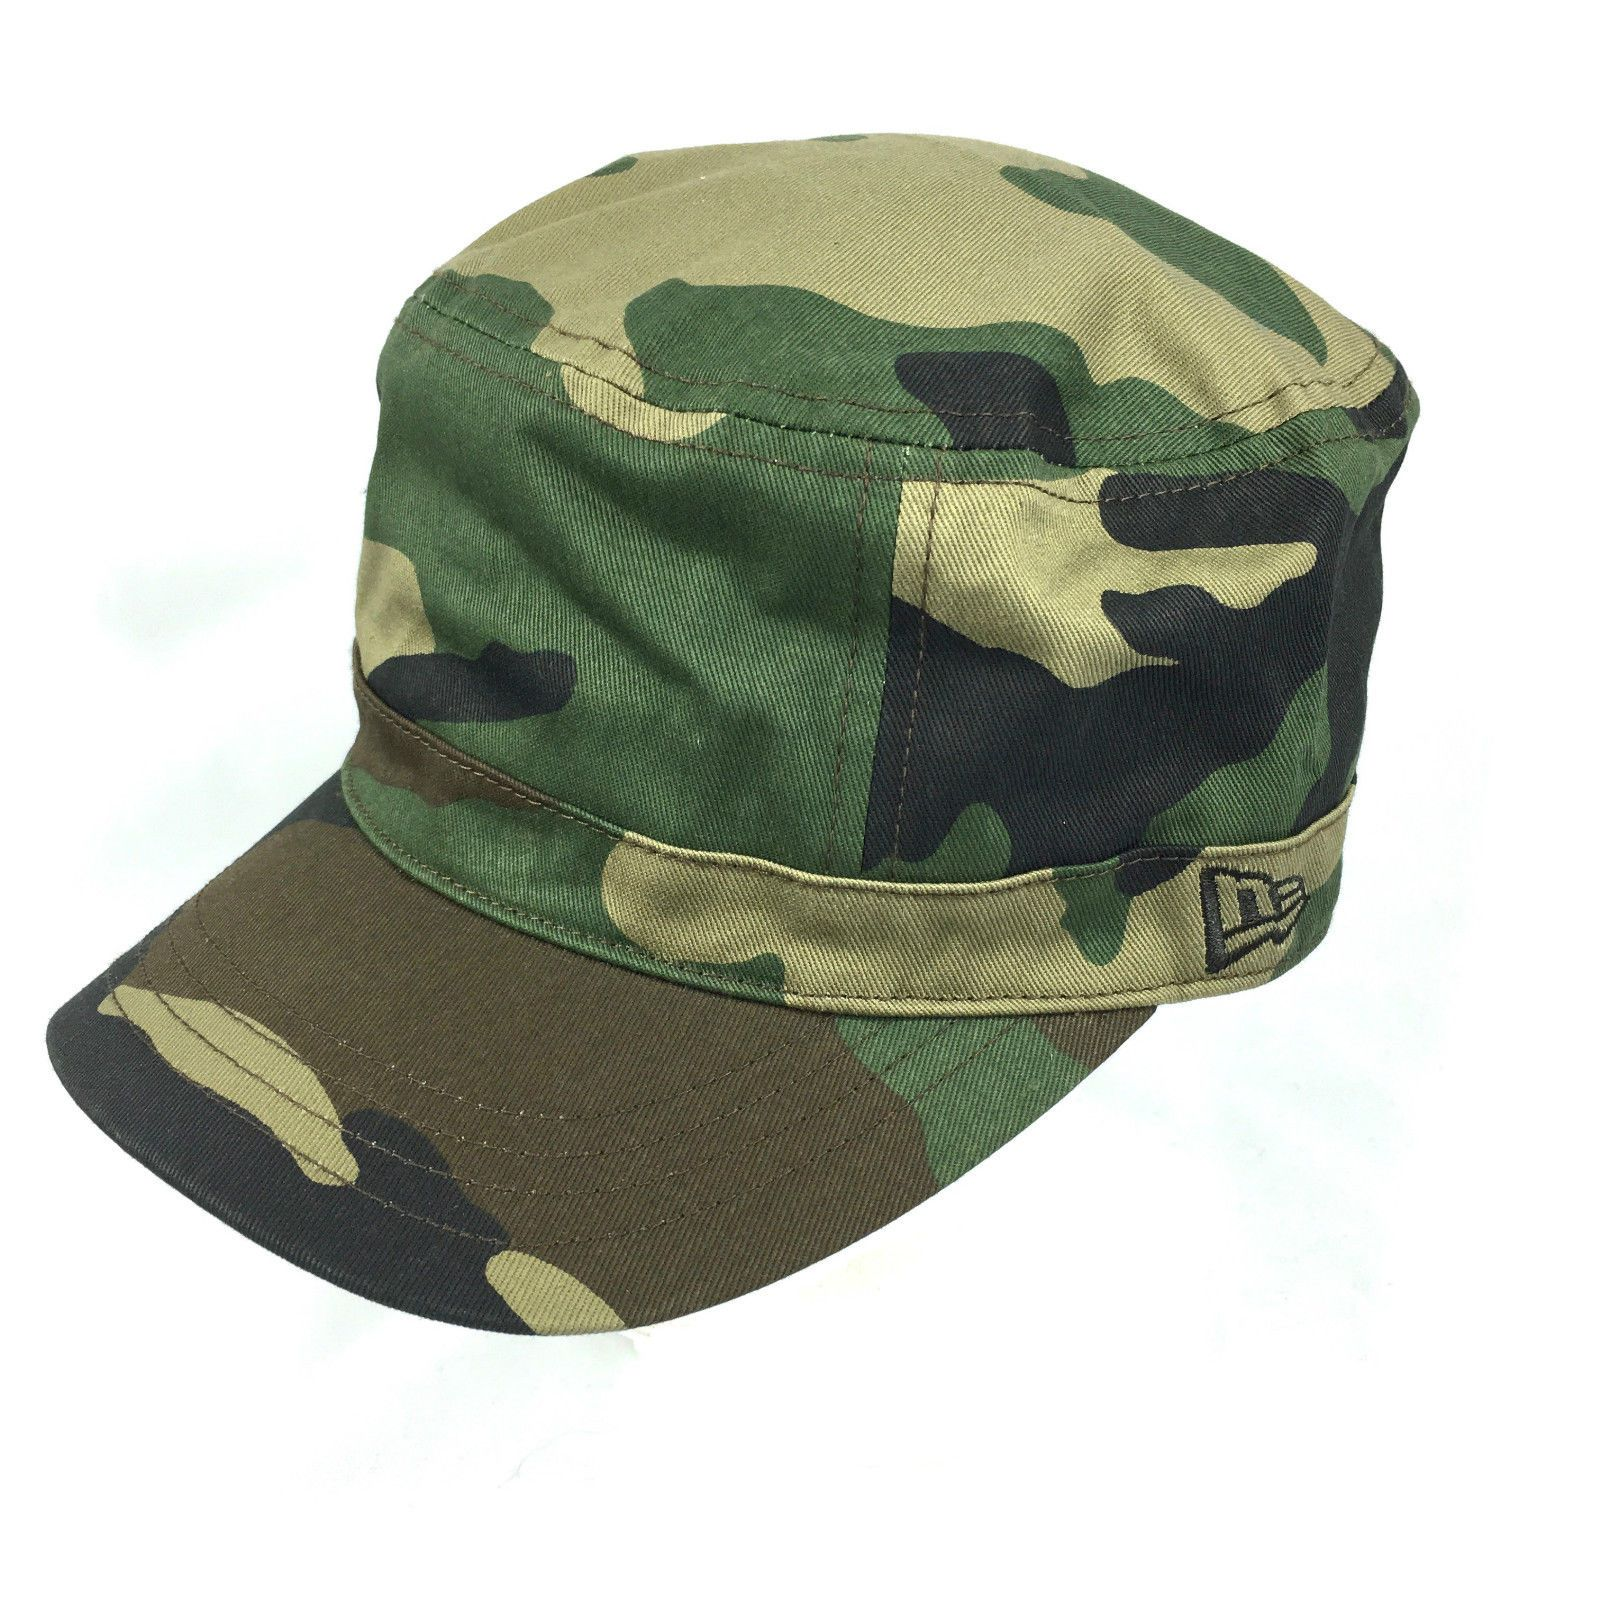 61f8271e3eecd1 US $24.99 New without tags in Clothing, Shoes & Accessories, Men's  Accessories, Hats